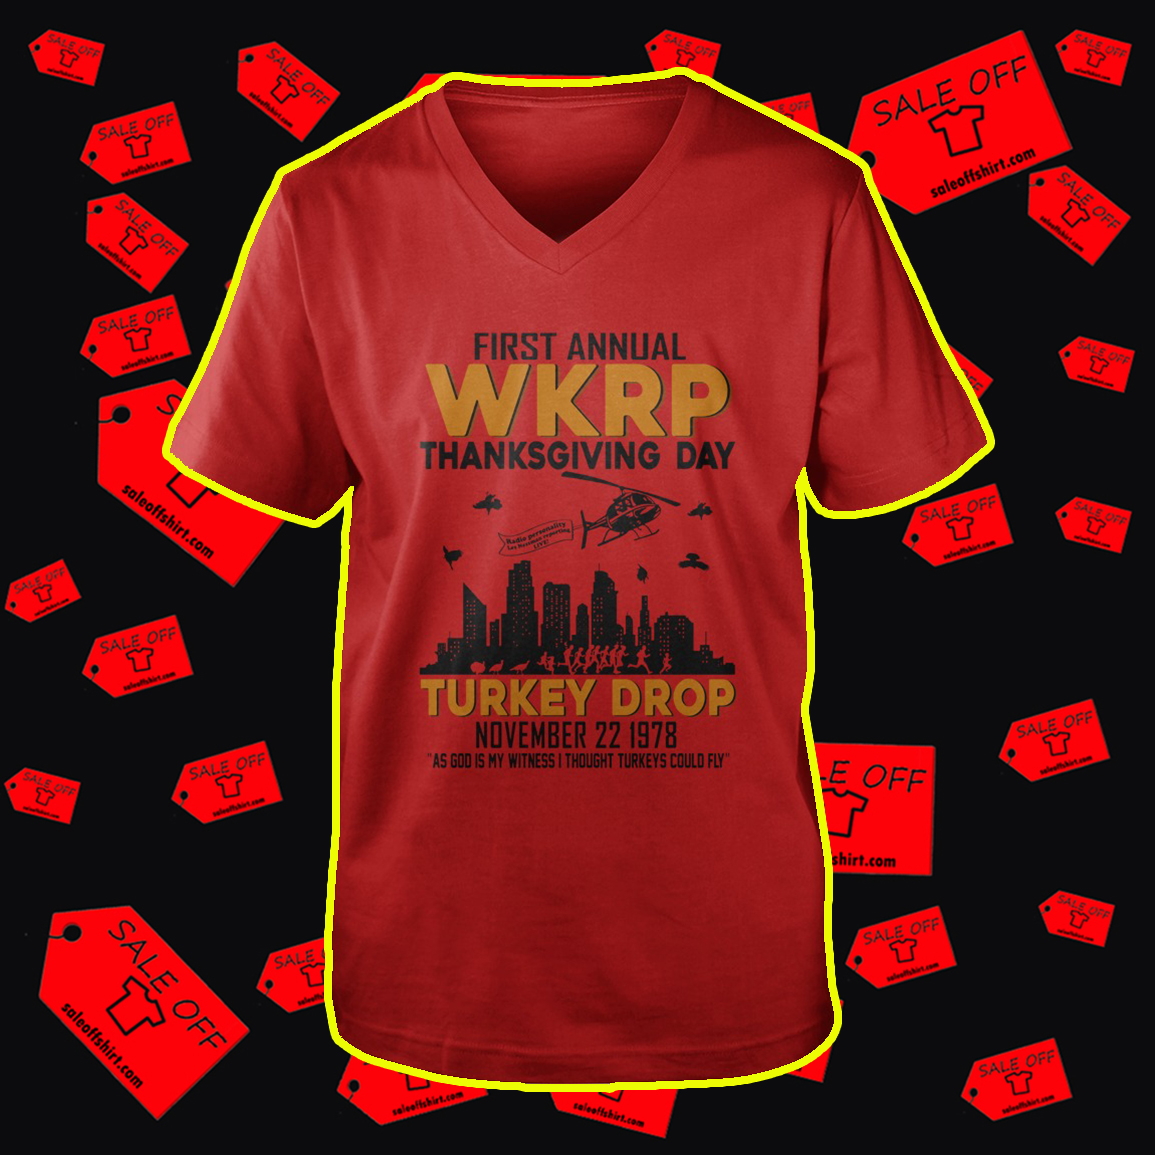 First annual WKRP thanksgiving day v-neck